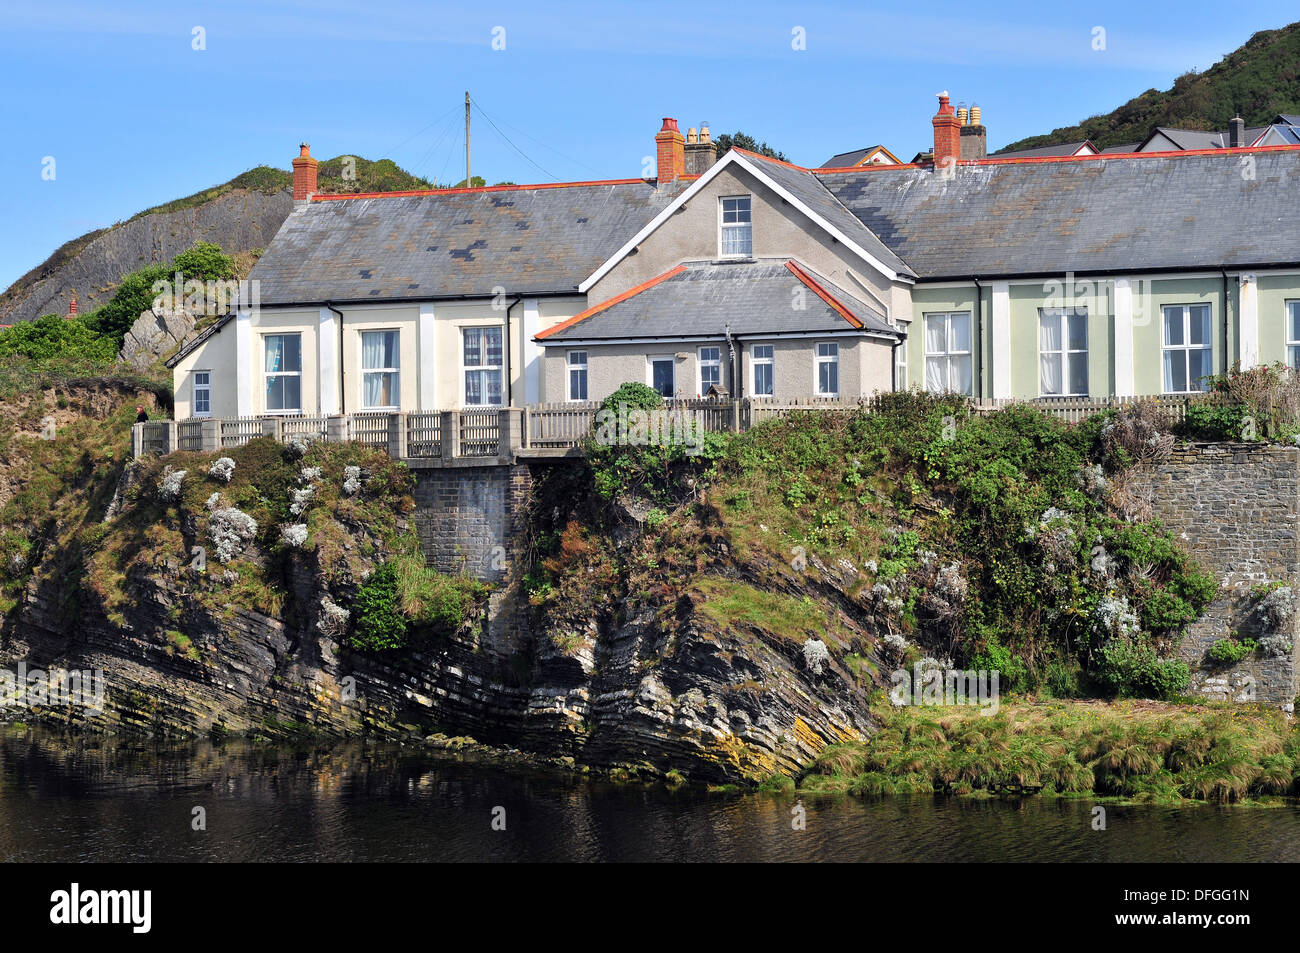 The building that was once the Fever and Isolation Hospital, Aberystwyth, Wales, UK on the bank of the River Ystwyth - Stock Image